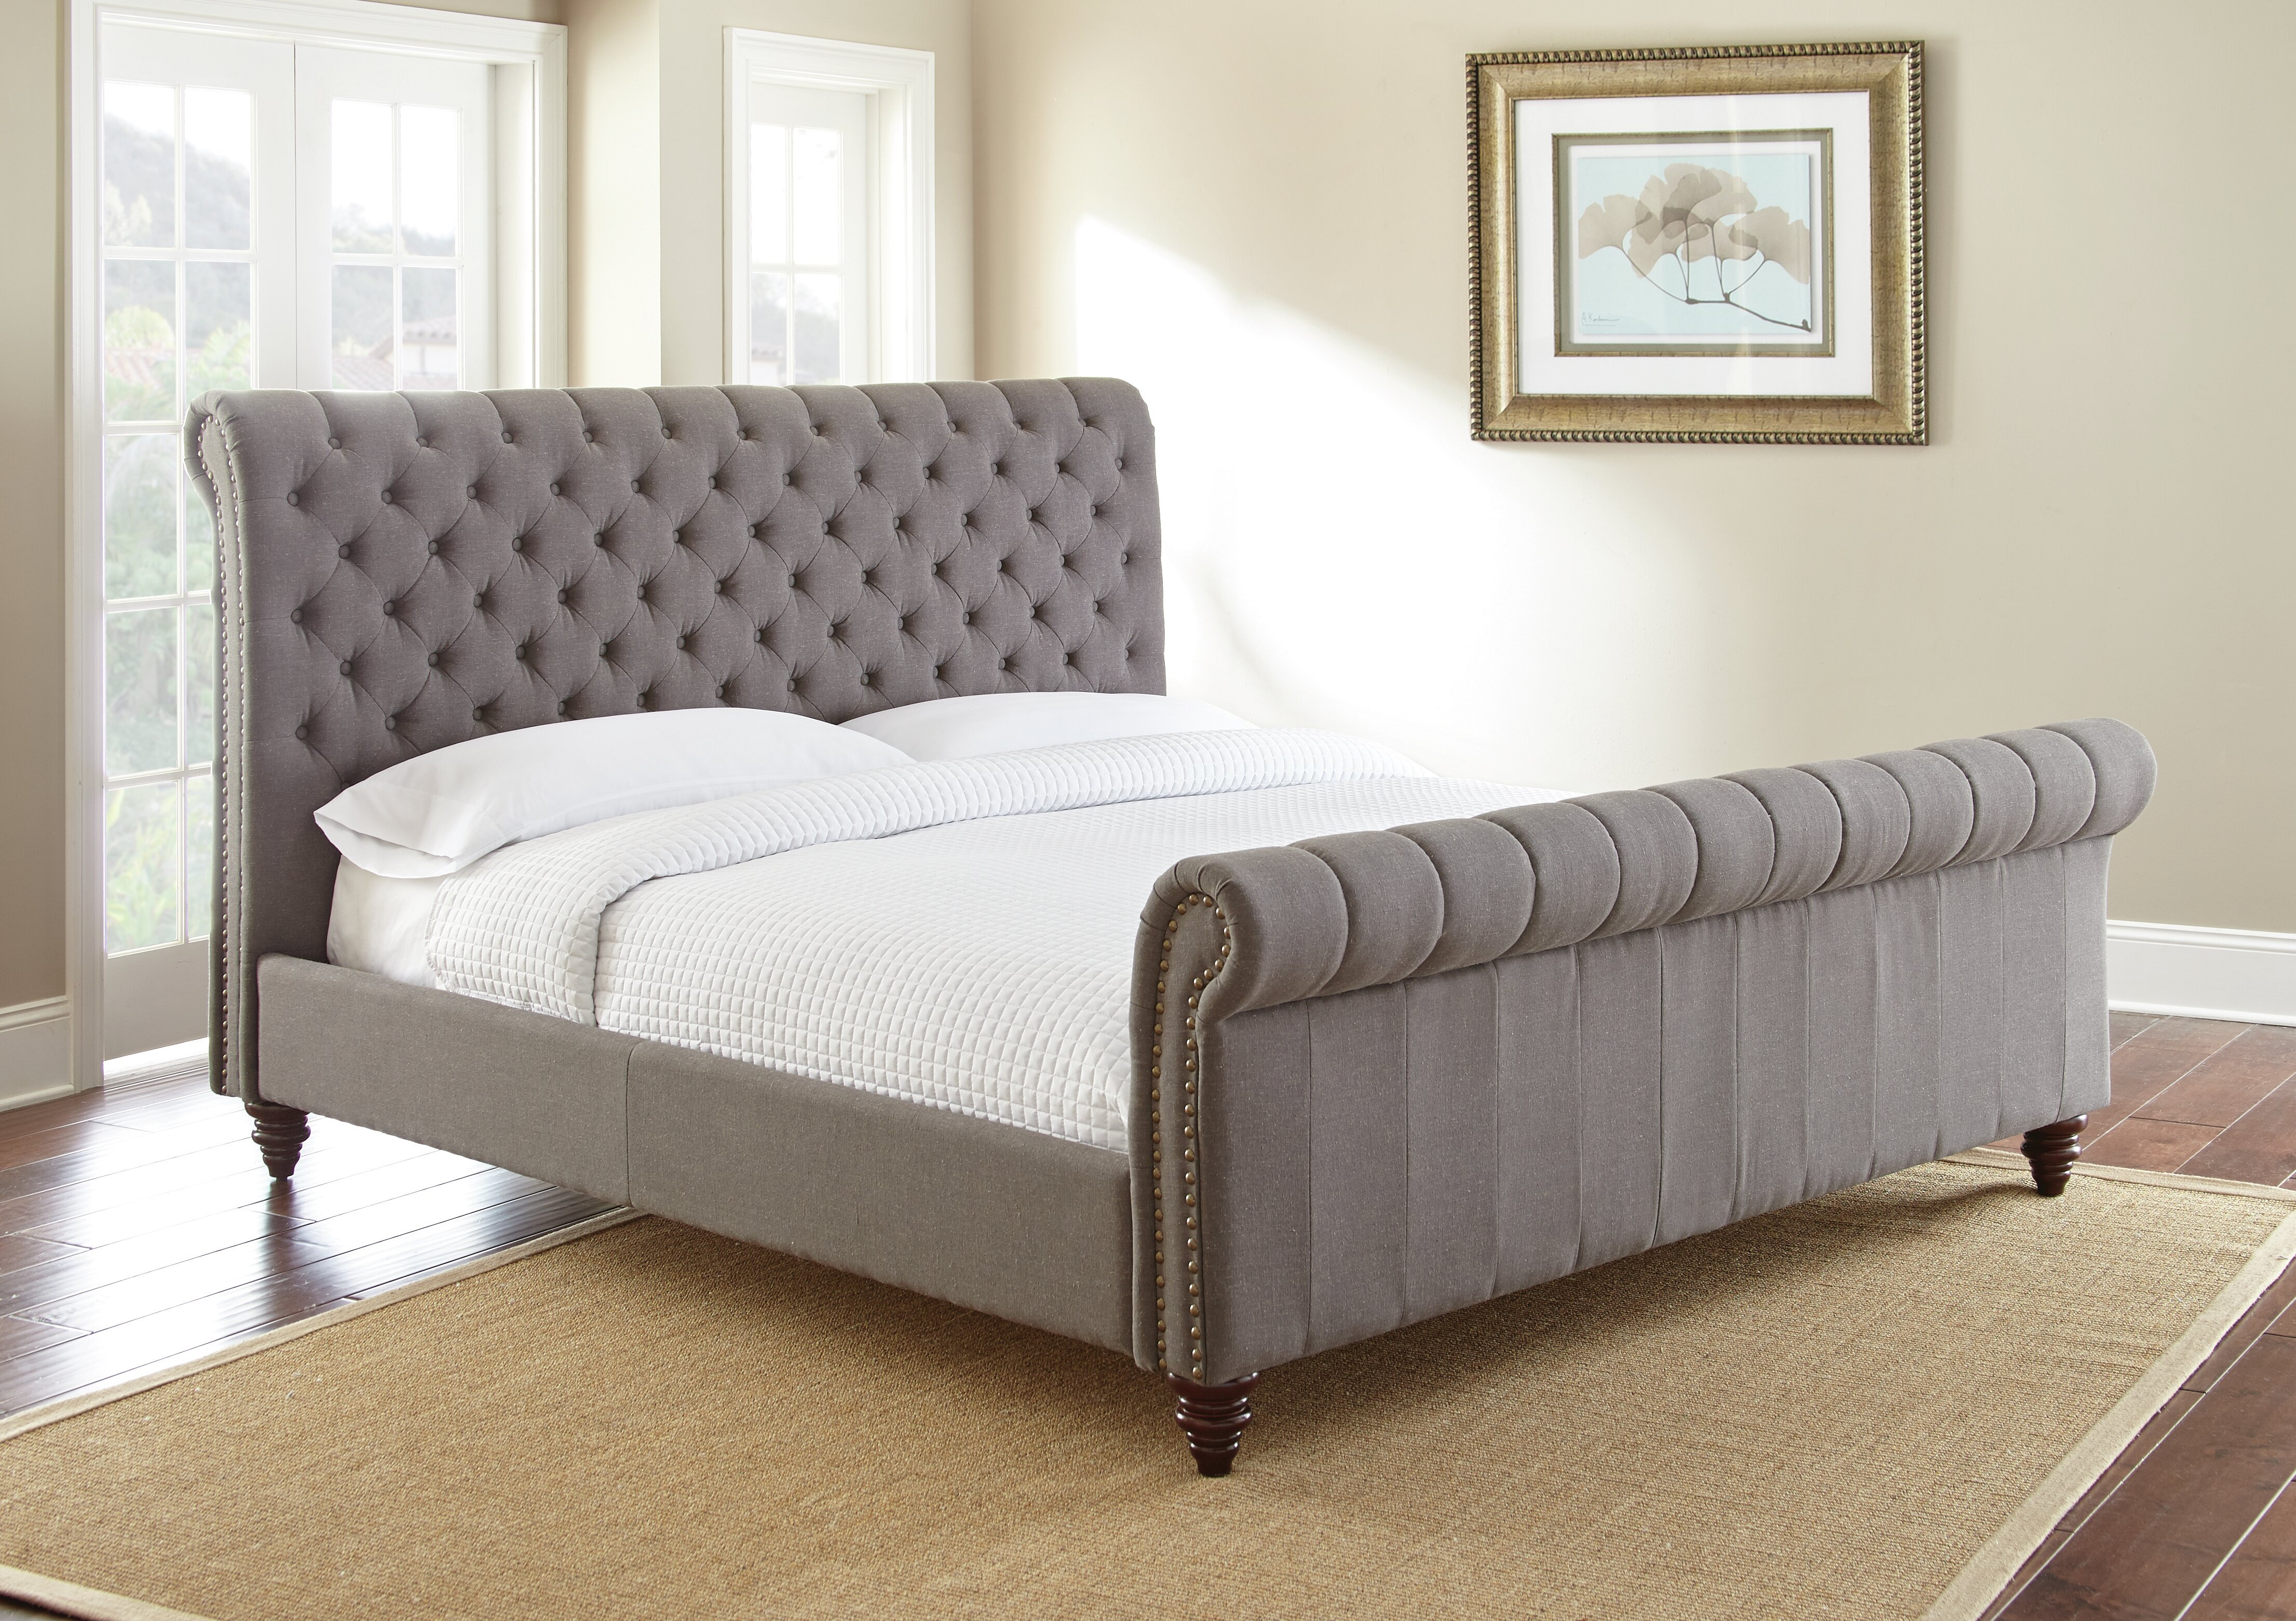 Darby Home Co Karsten Upholstered Low Profile Sleigh Bed Reviews Wayfair